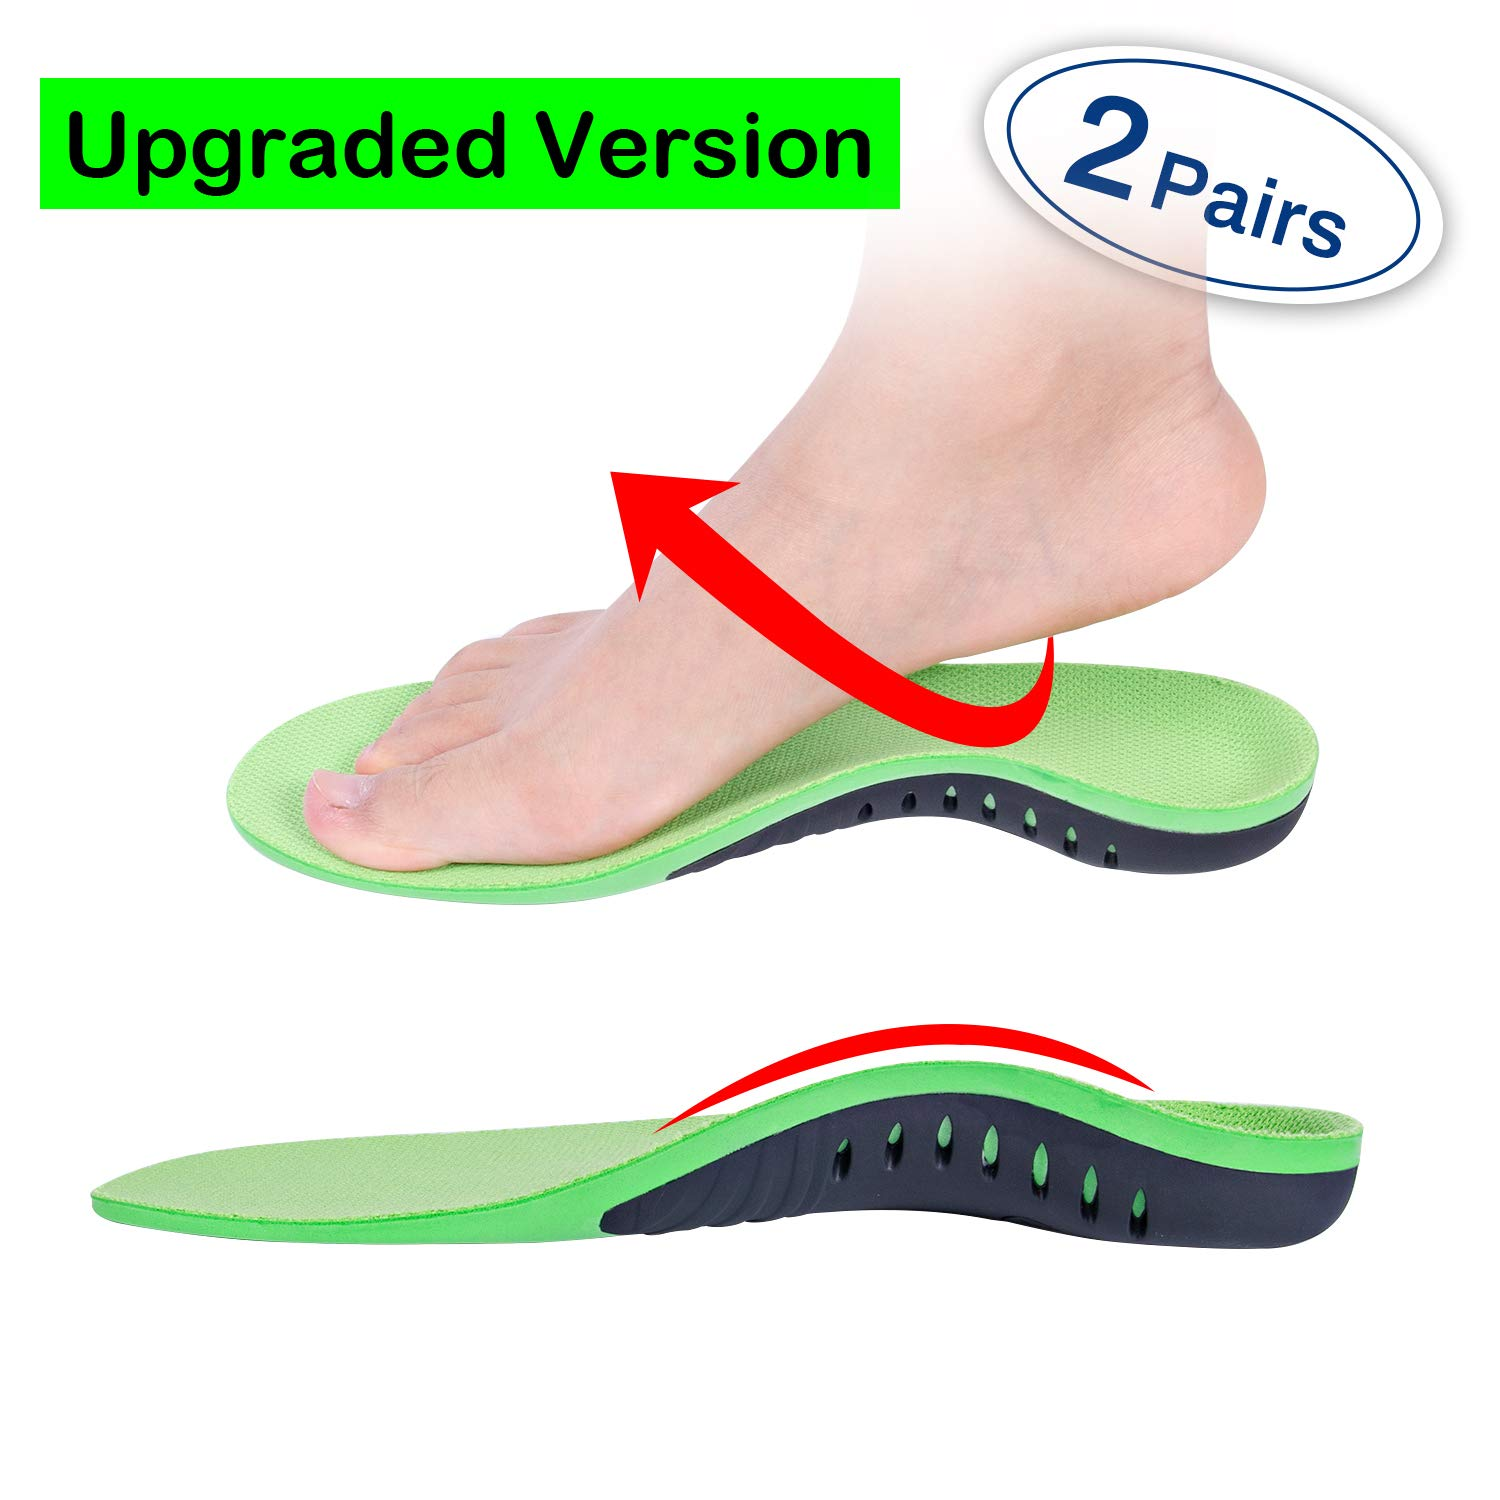 Orthotics Insoles Arch Support Inserts (2 Pairs) Comfort Sports Insoles Plus Support Anti-Fatigue Technology Replacement Insole Athletics Leisure and Work by Meidlan